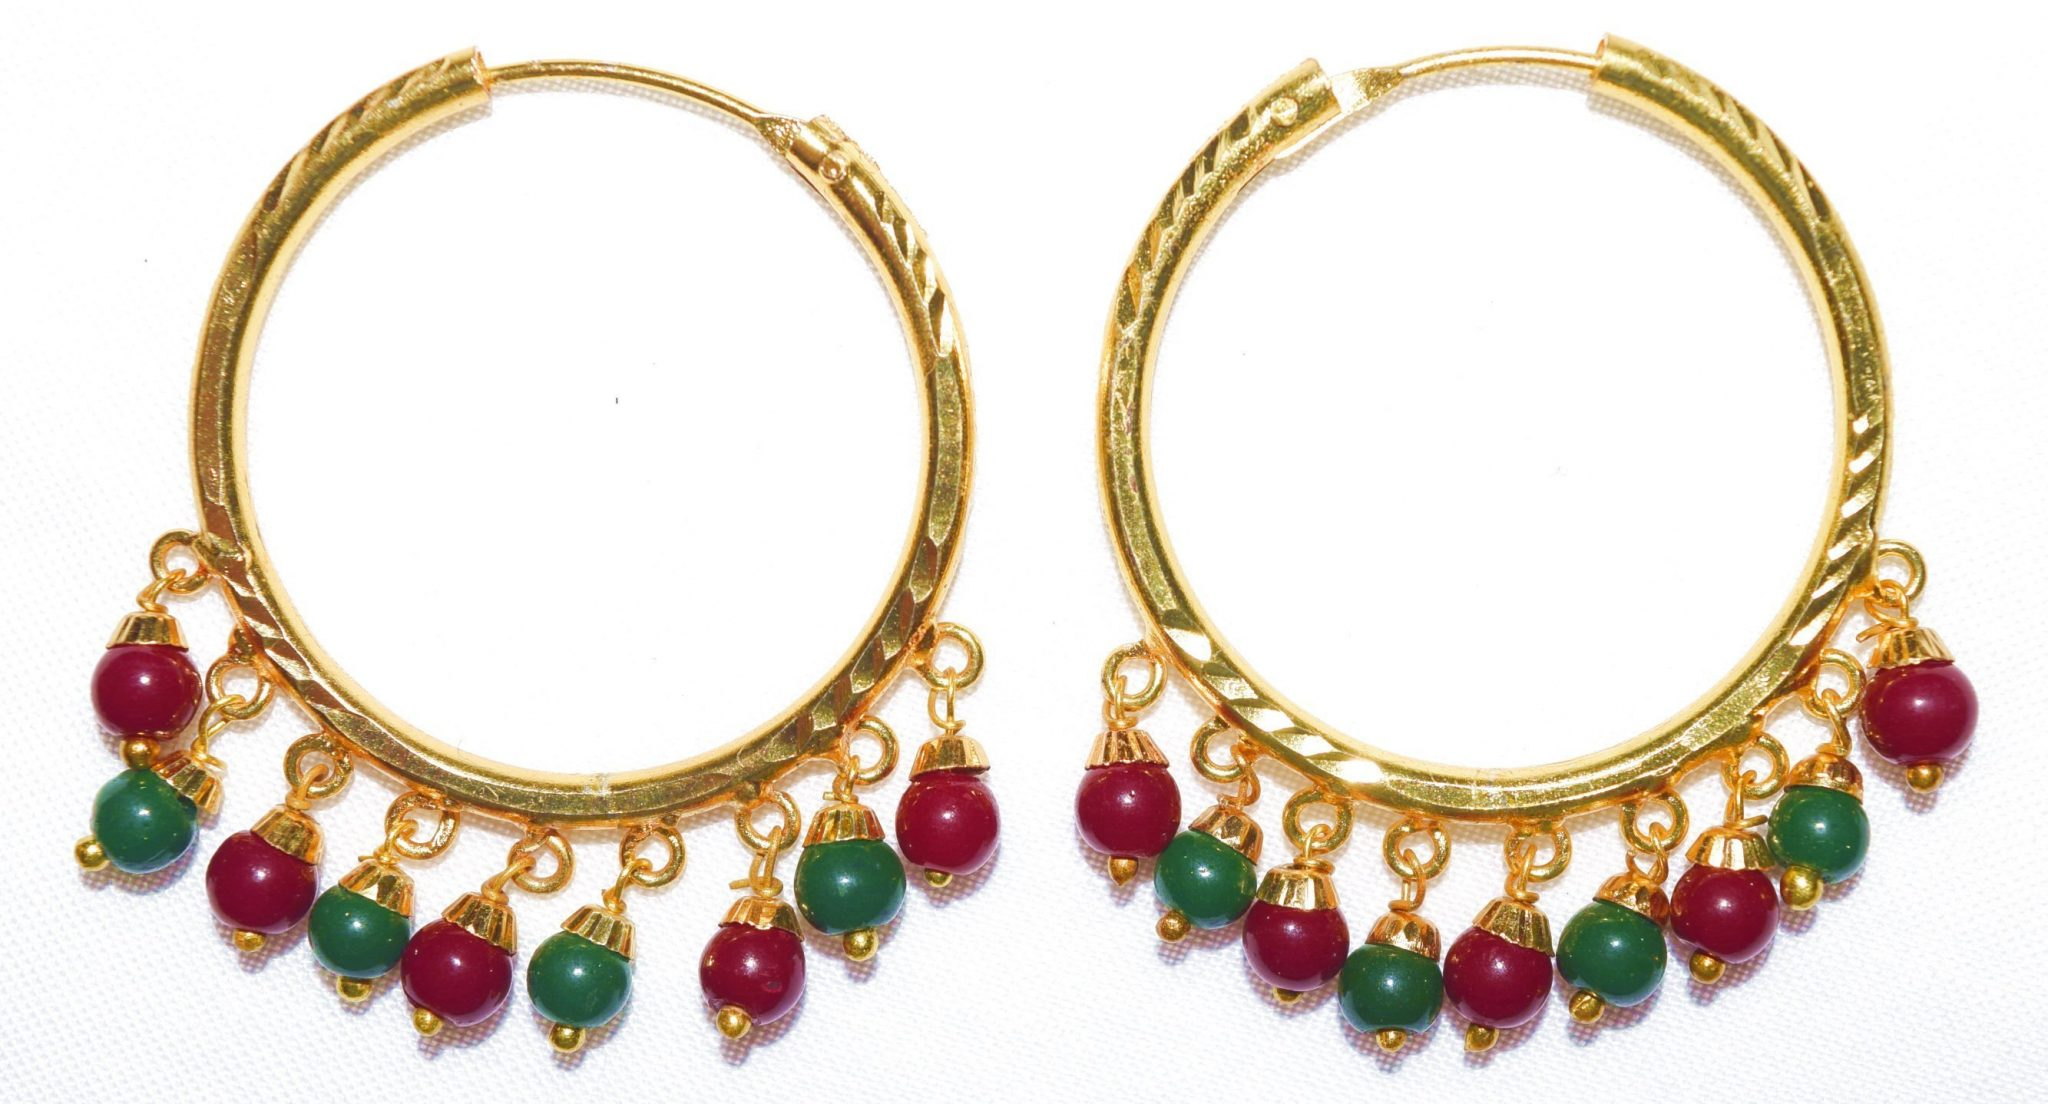 Gold Polished Ear Rings Baliyyan set with two colour beads J0116 1